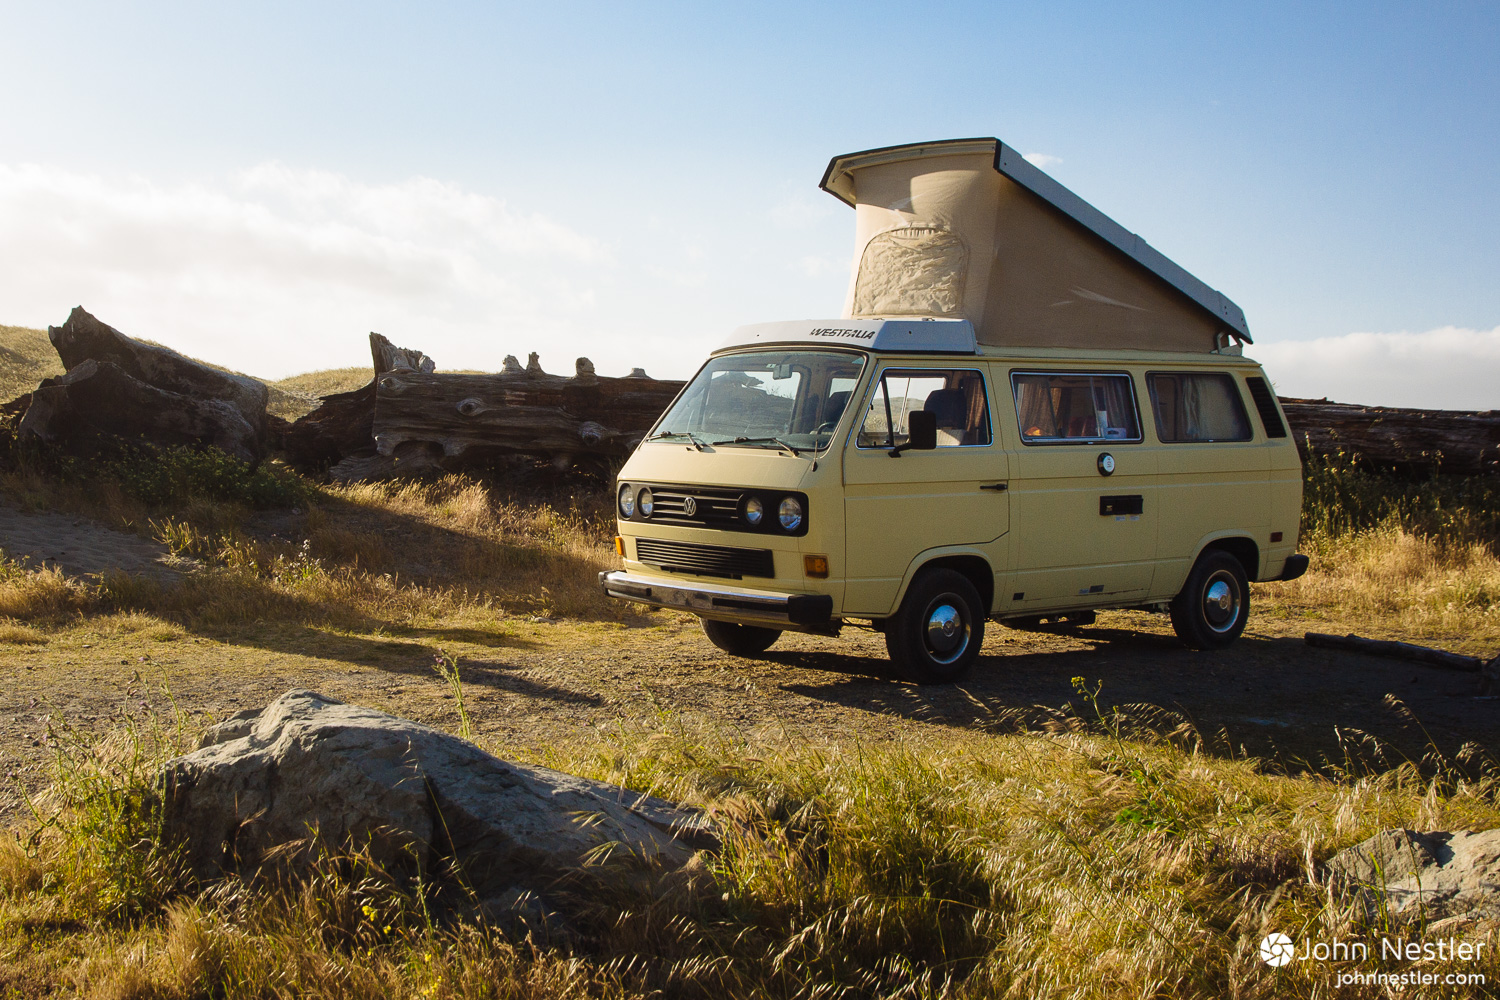 This setting seemed idyllic to me. A VW Westfalia parked by the ocean at Mattole Beach.